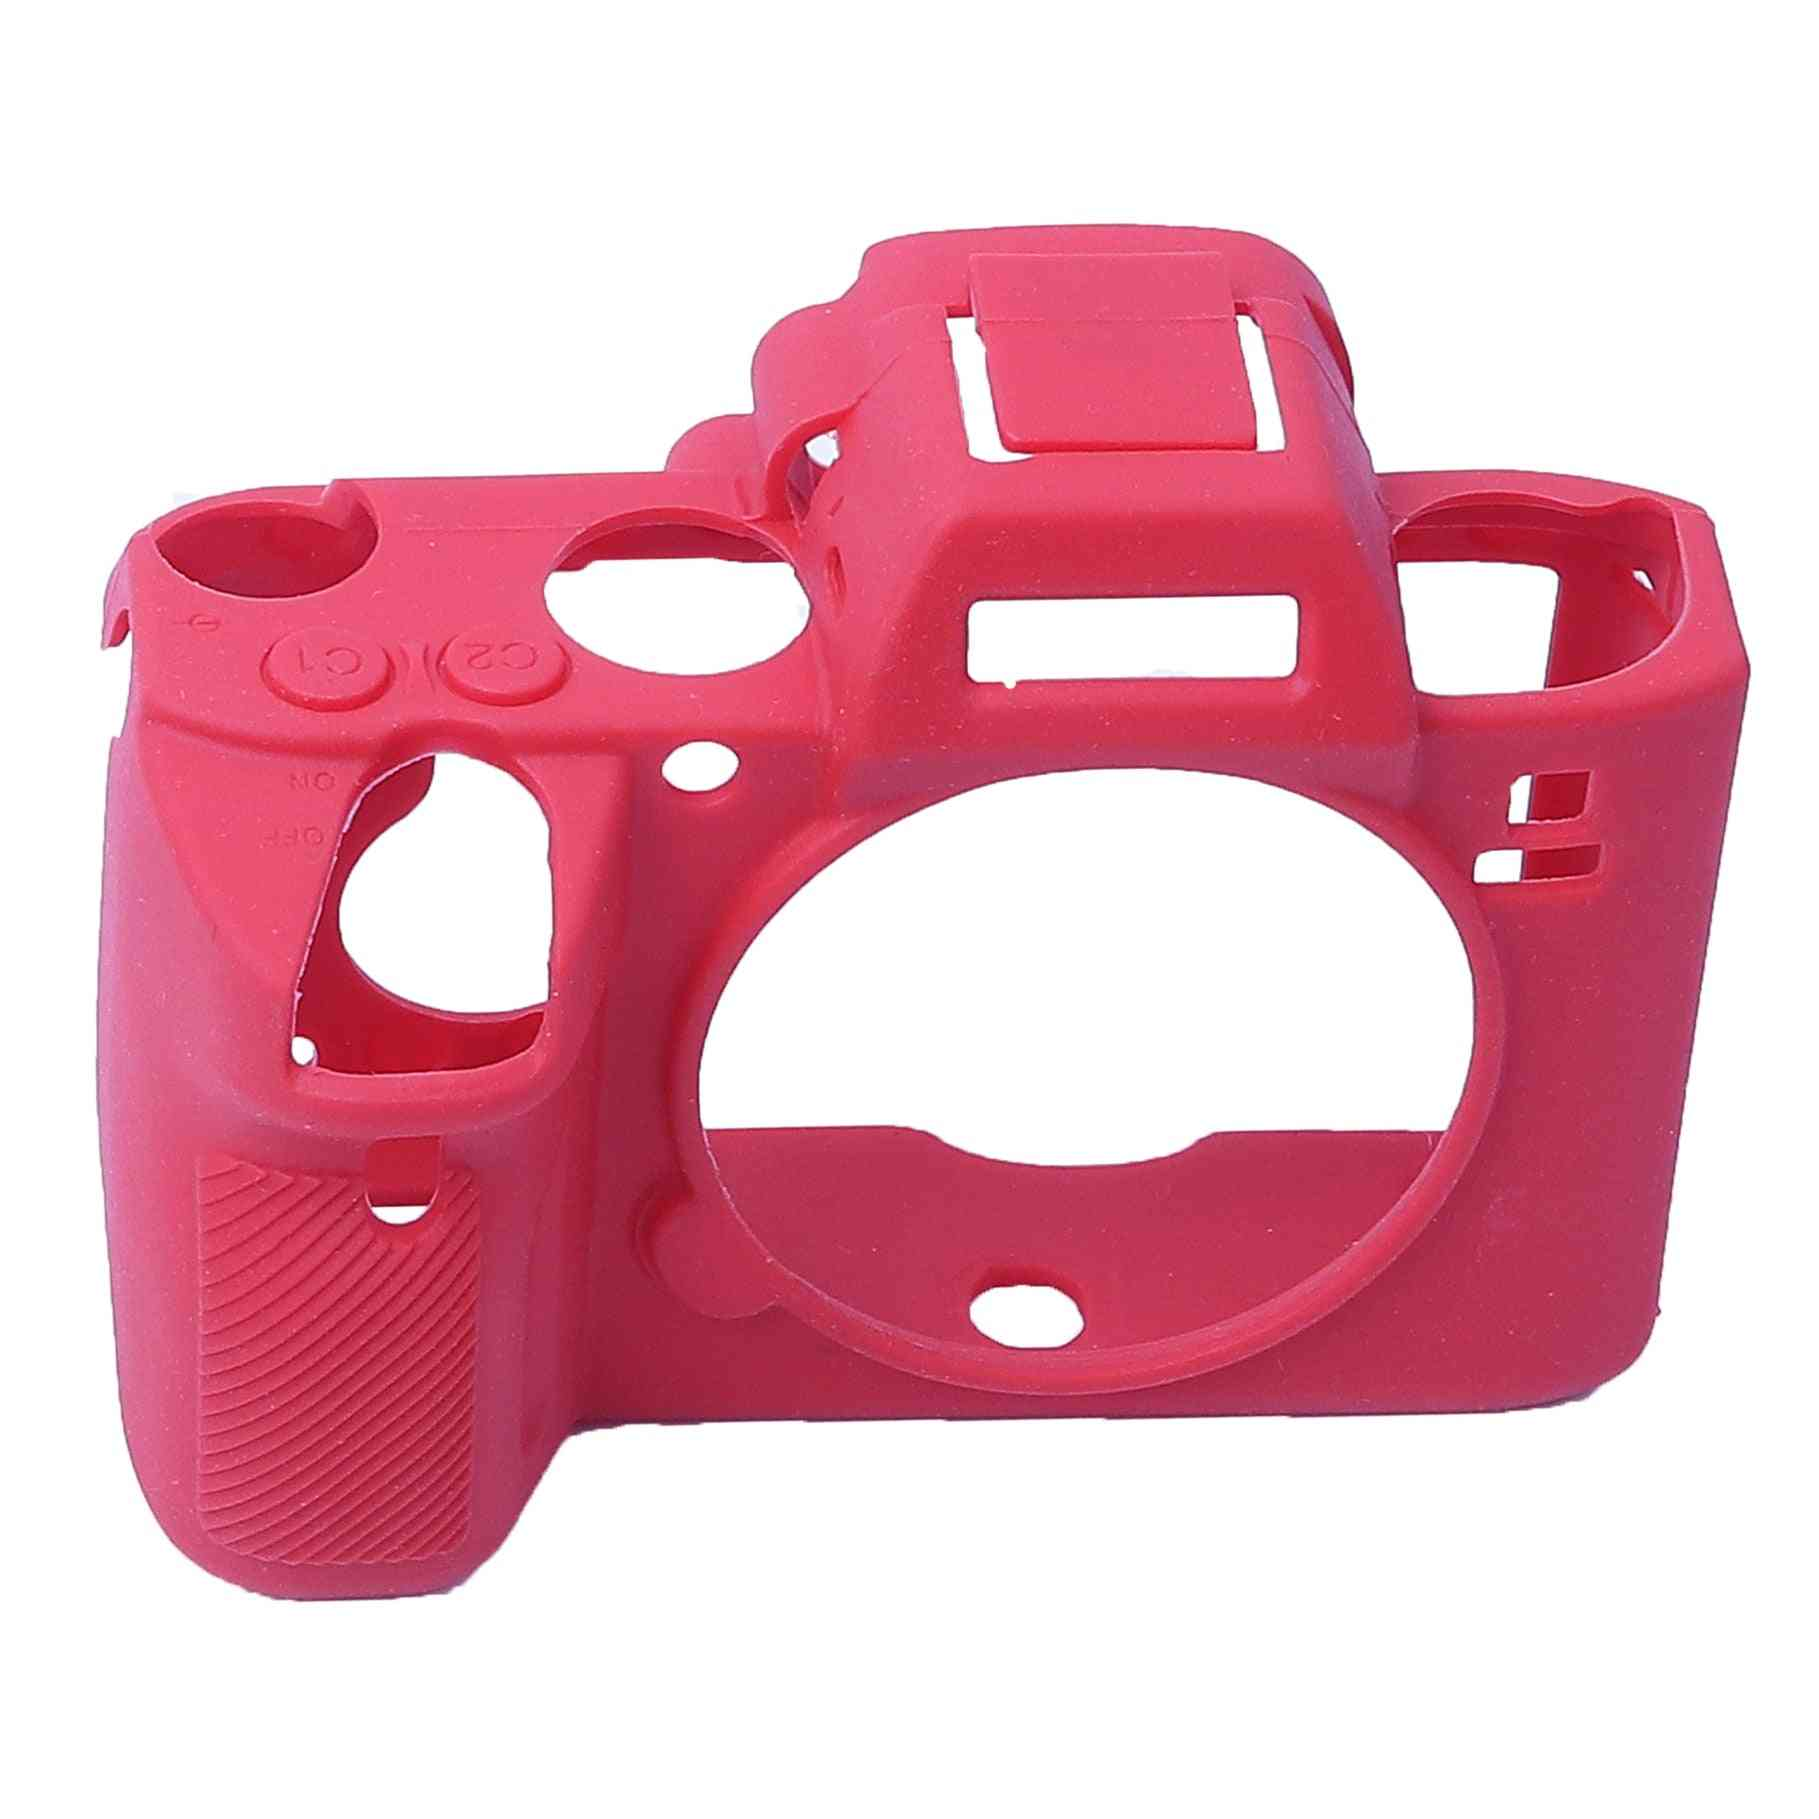 Soft Silicone Rubber Mirrorless System Camera Silicone Case Cover Bag